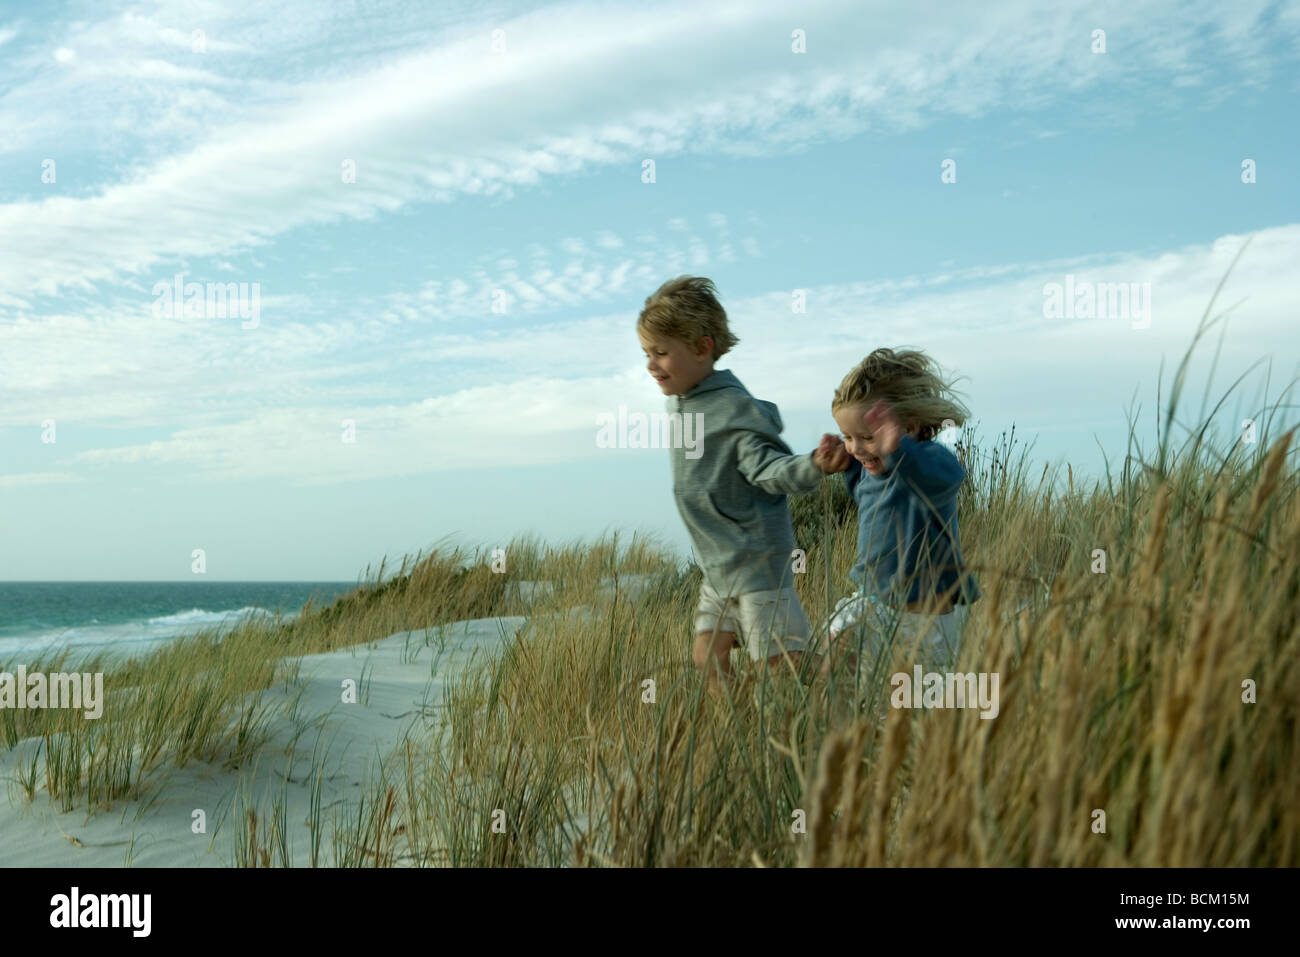 Boy and girl running through dune grass, holding hands - Stock Image